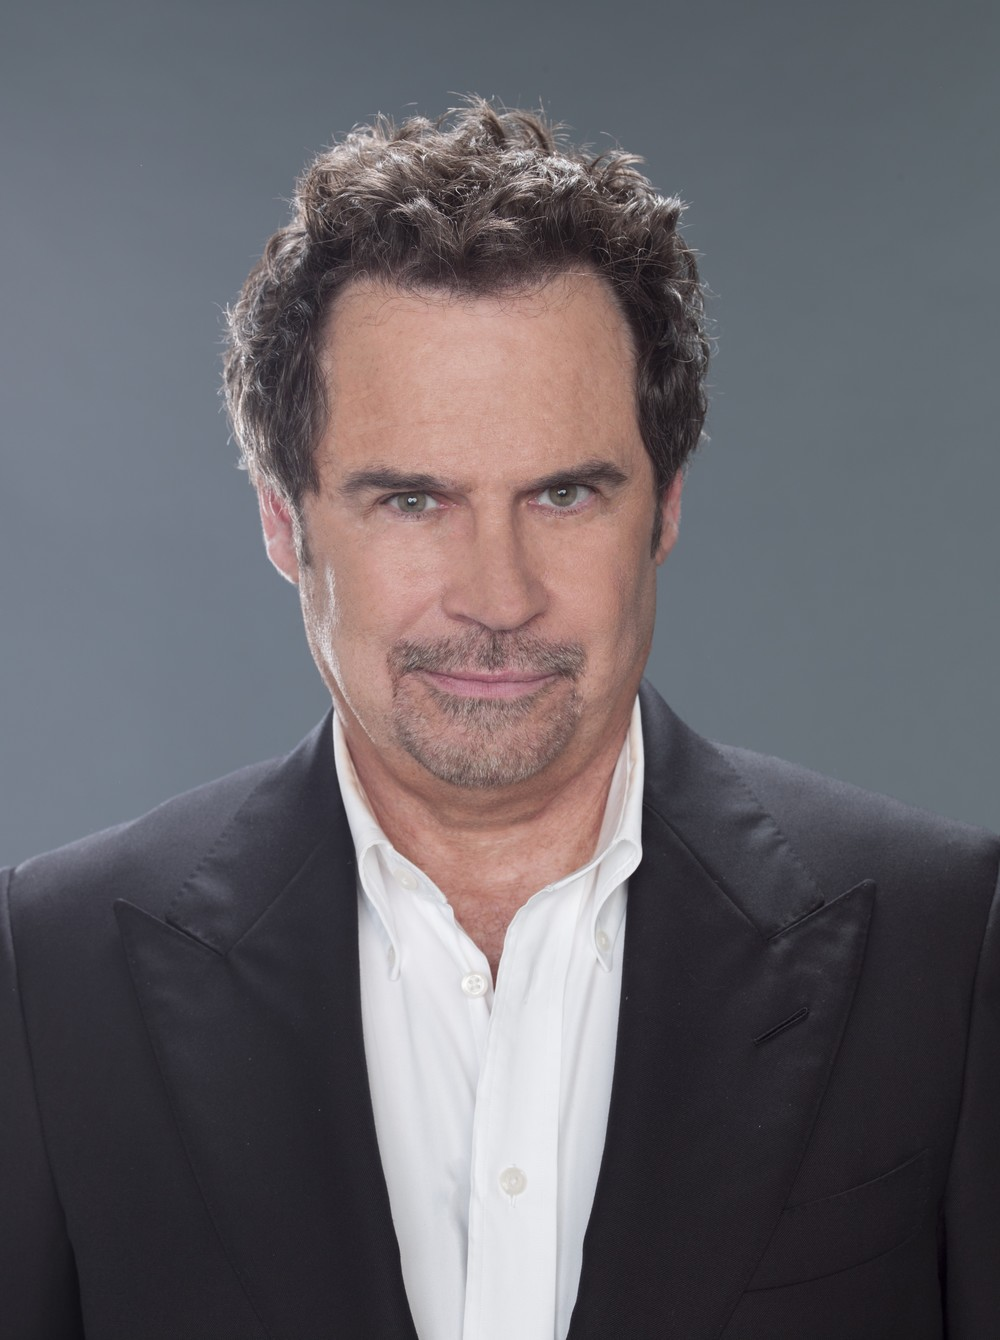 This smirk sums up Dennis Miller pretty well.